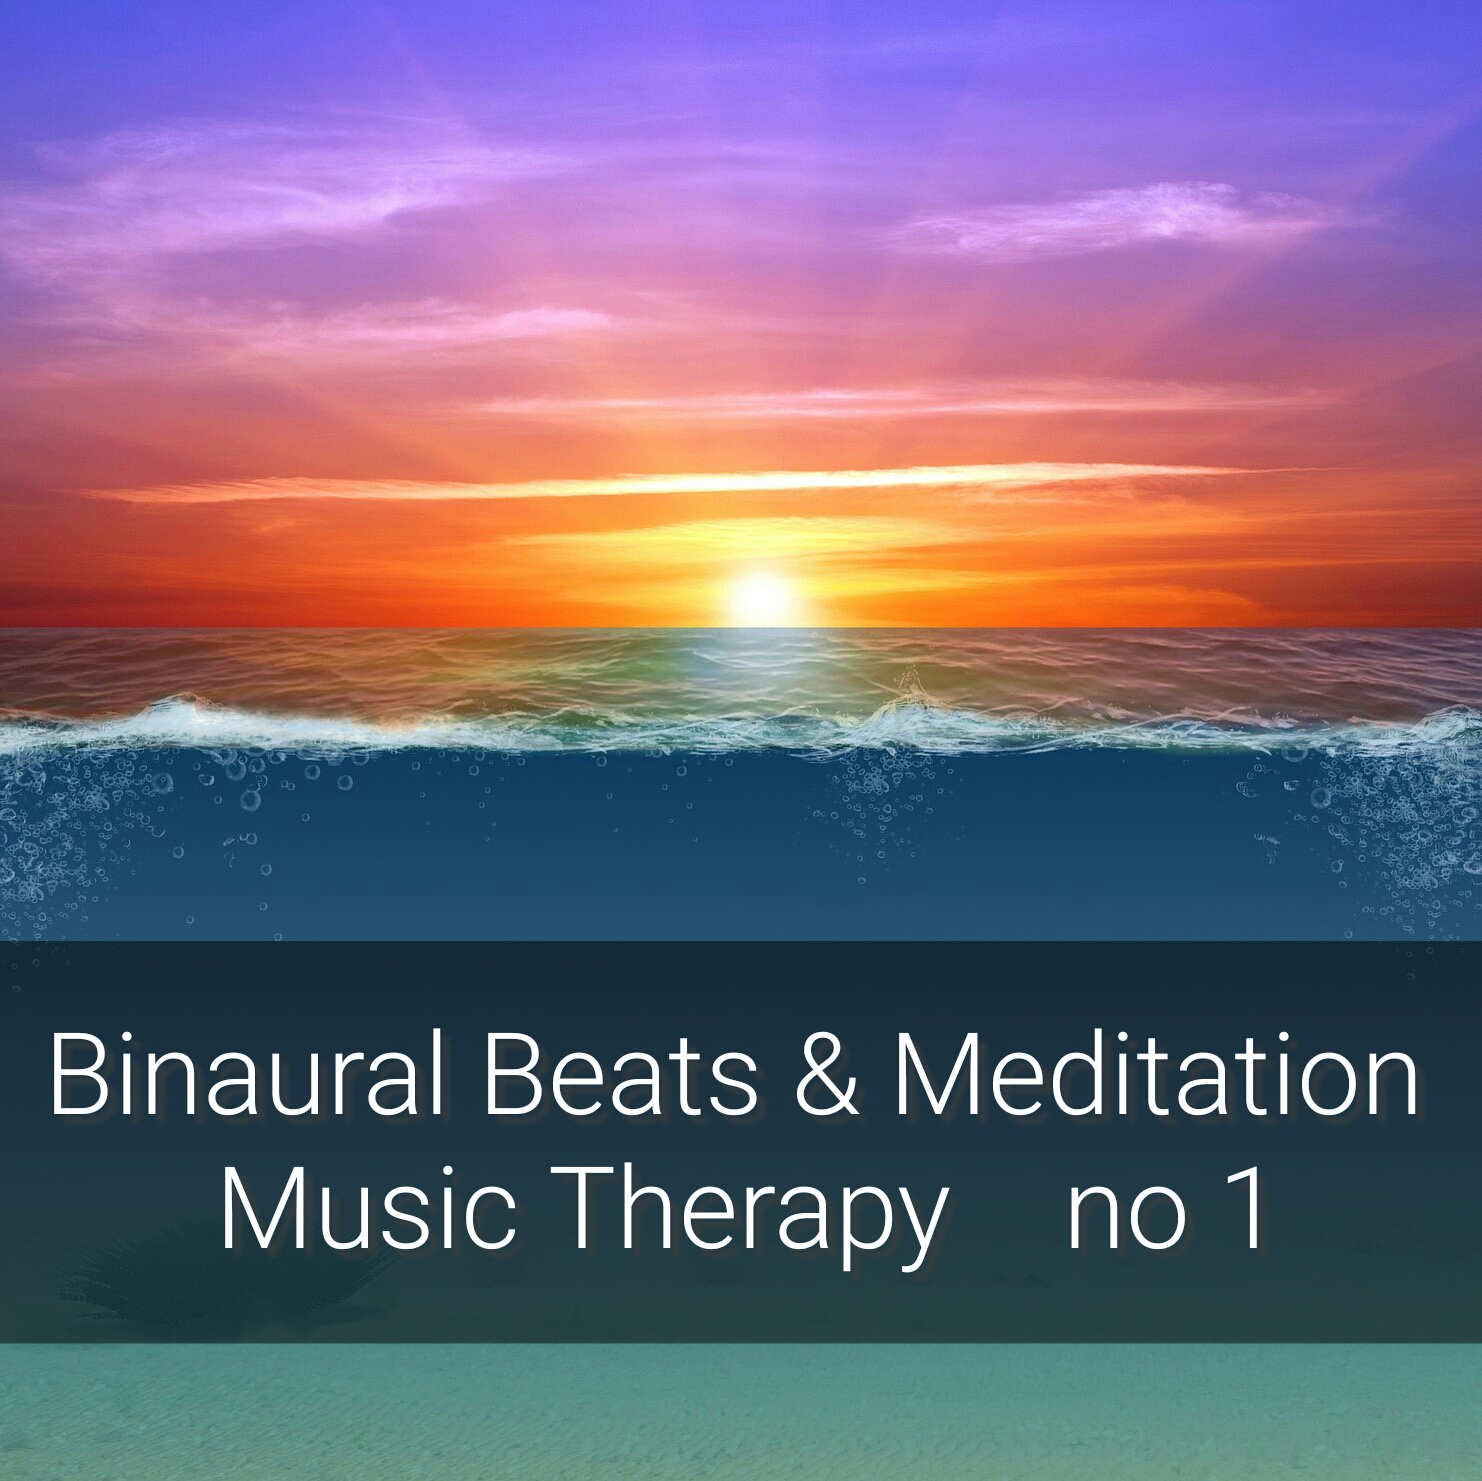 Binaural Beats and Music Therapy no1 Mp3 Music Download | Music2relax com